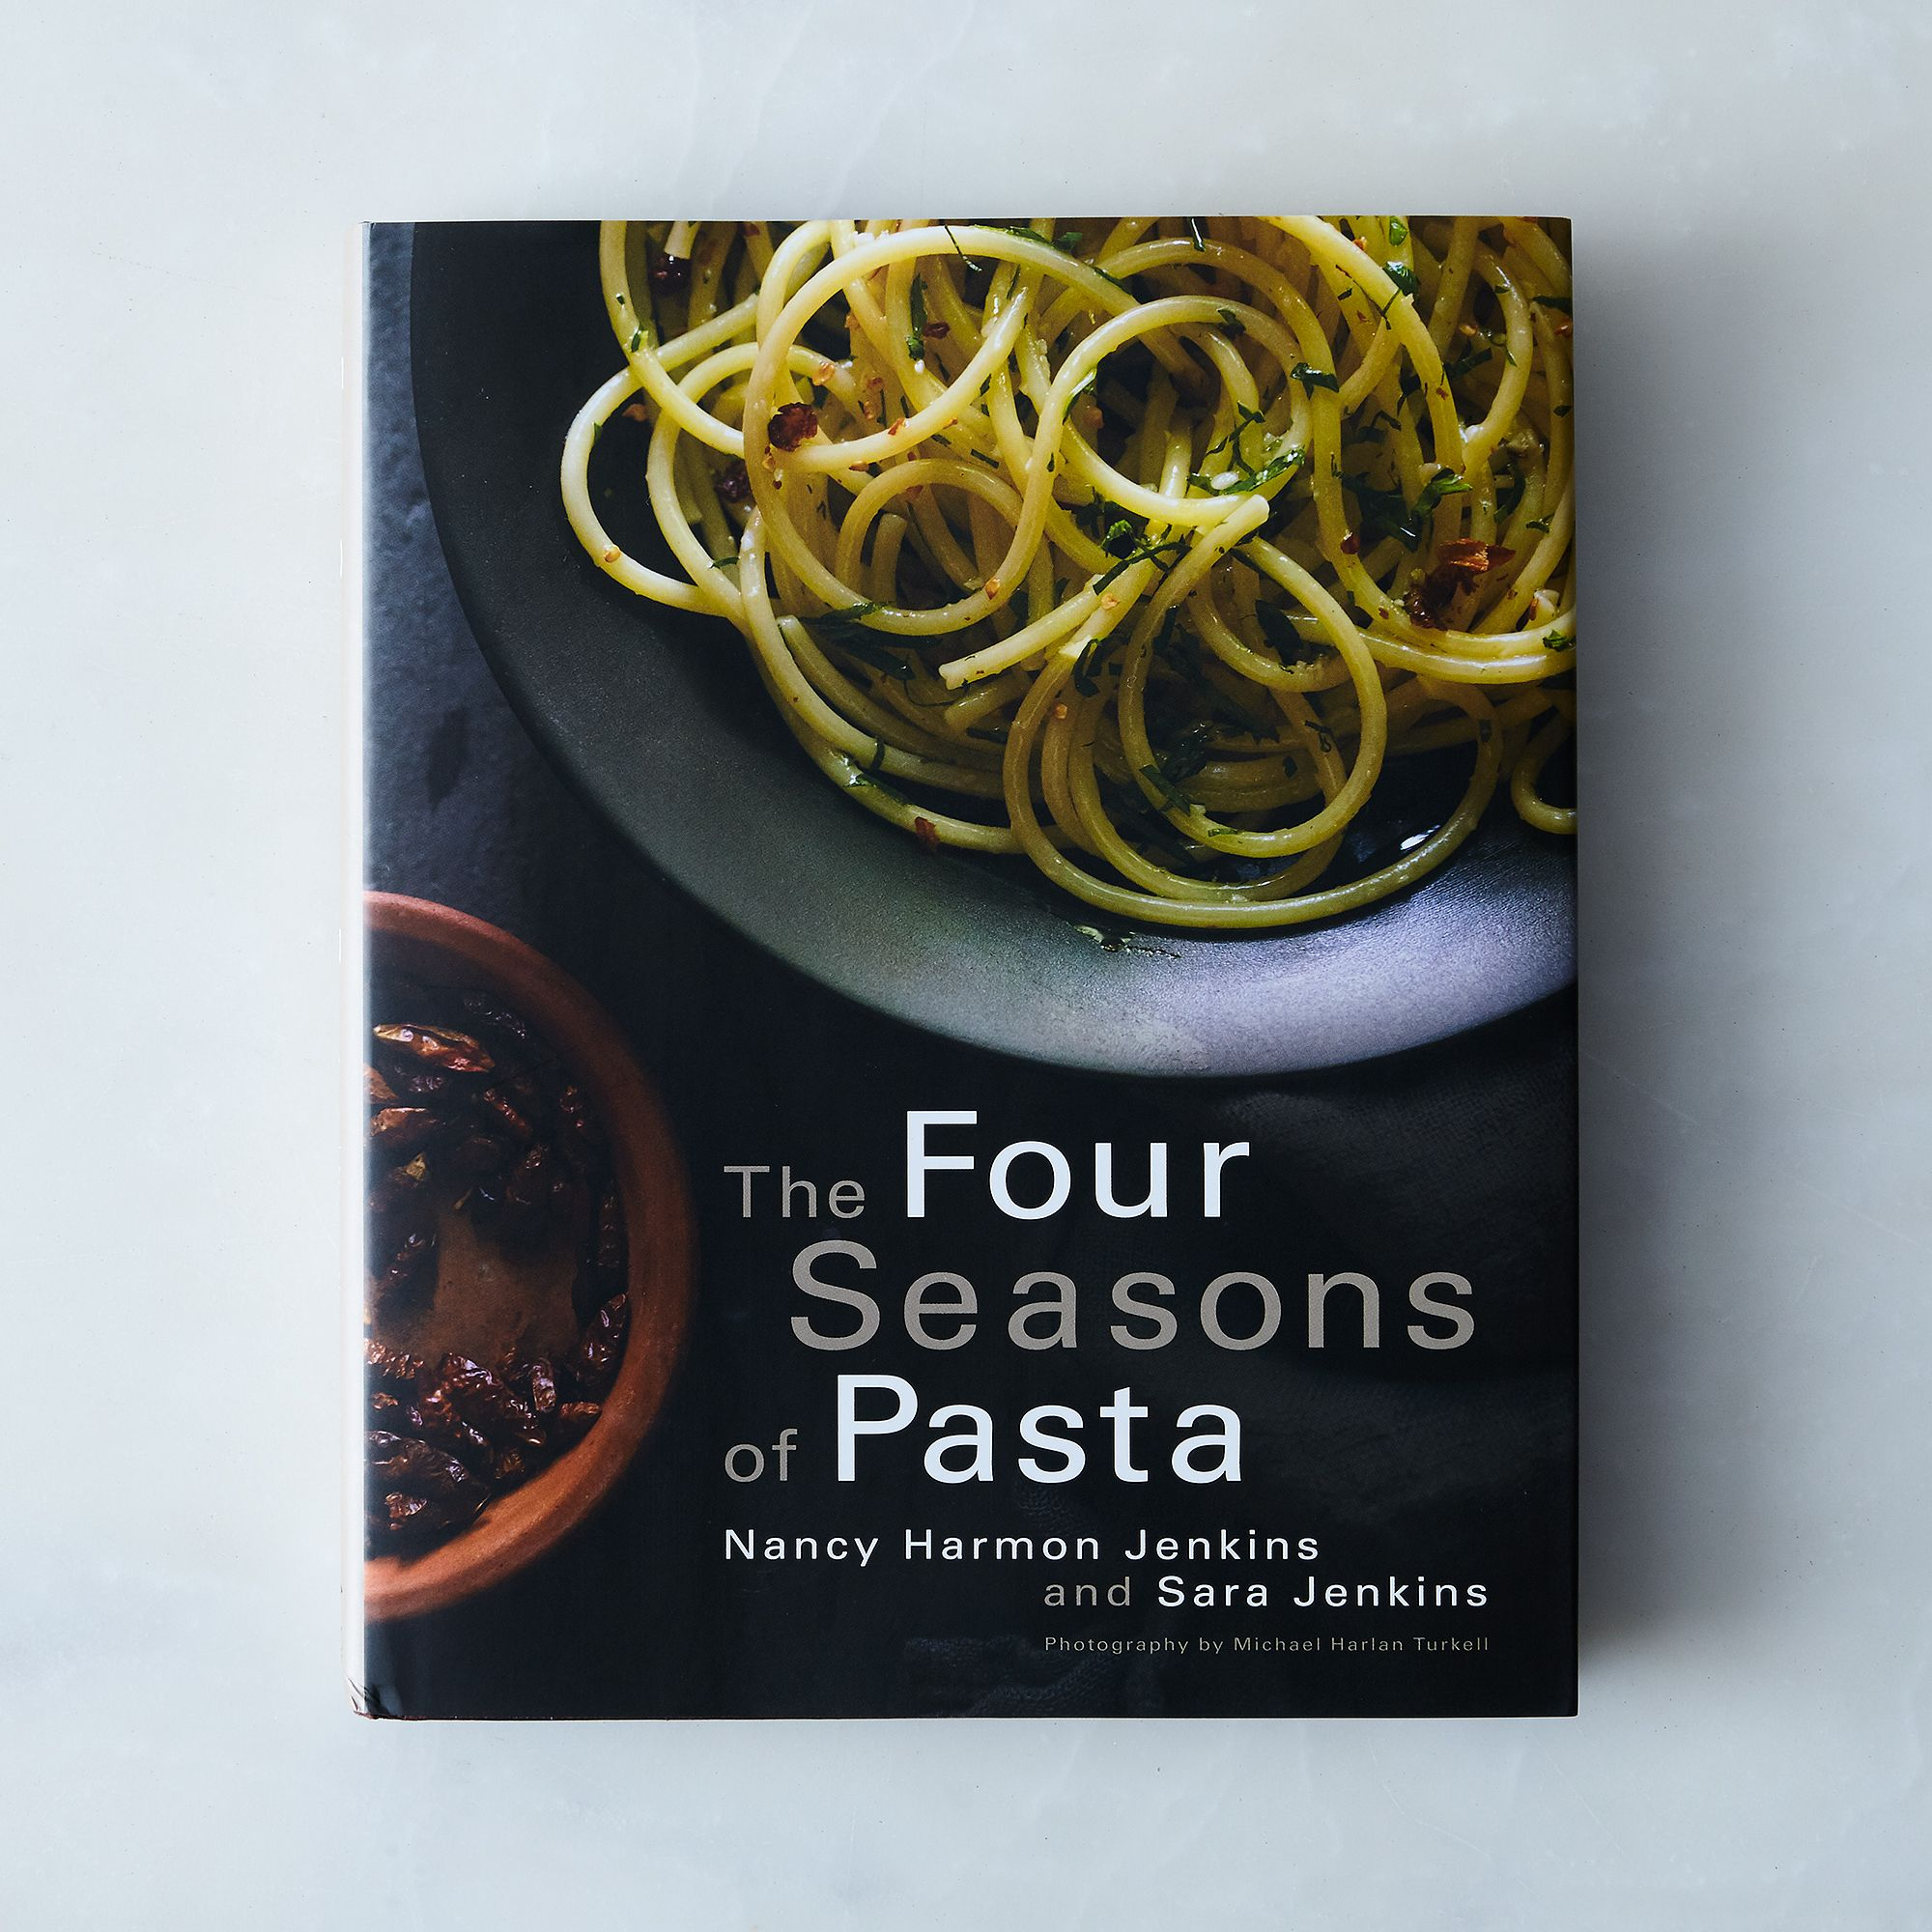 A33c9d85 3b04 4e9d 9157 12d9c777f9dc  2017 0511 random house the four seasons of pasta by sarah jenkins silo rocky luten 005